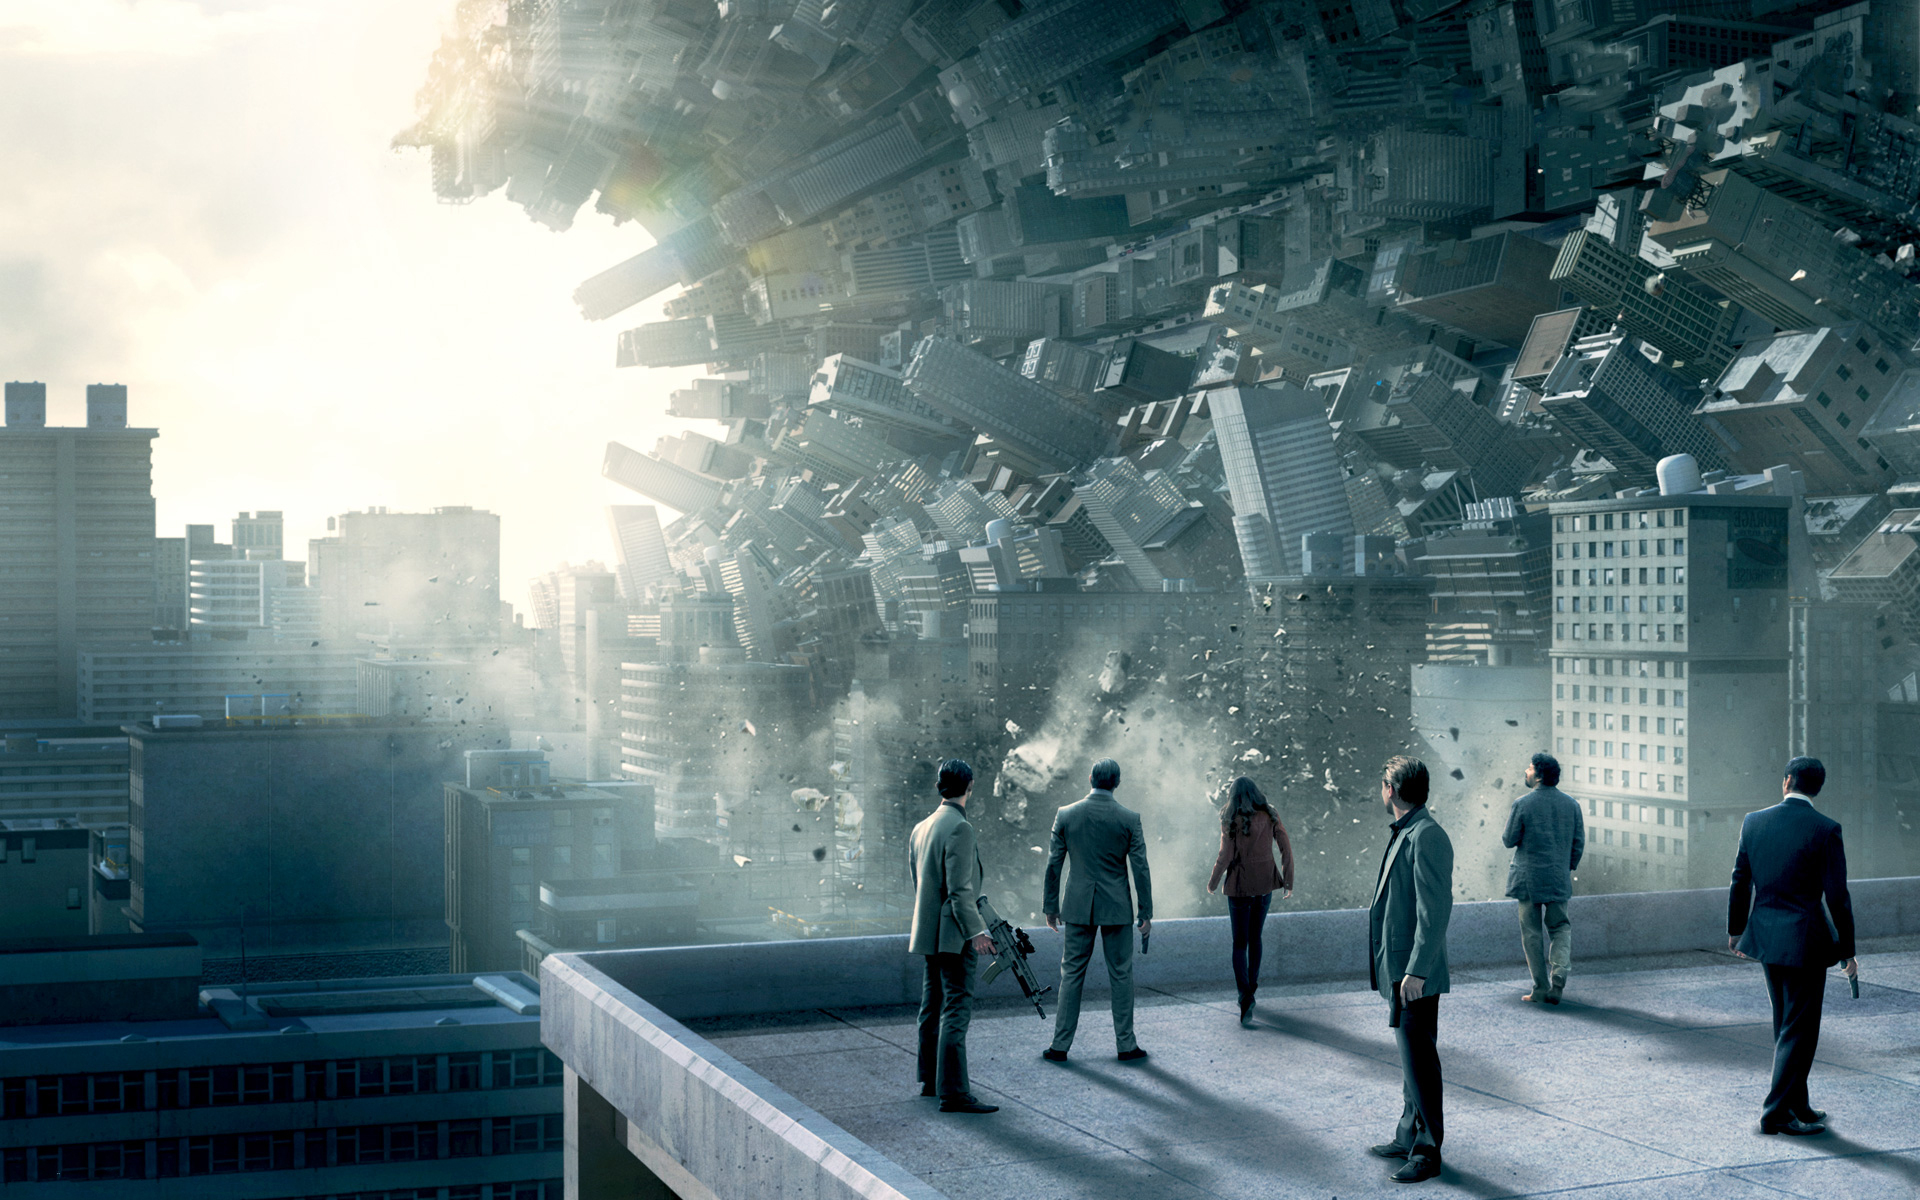 http://lounge.obviousmag.org/horizonte_distante/2015/01/06/Movies_Films_I_Inception_023533_.jpg